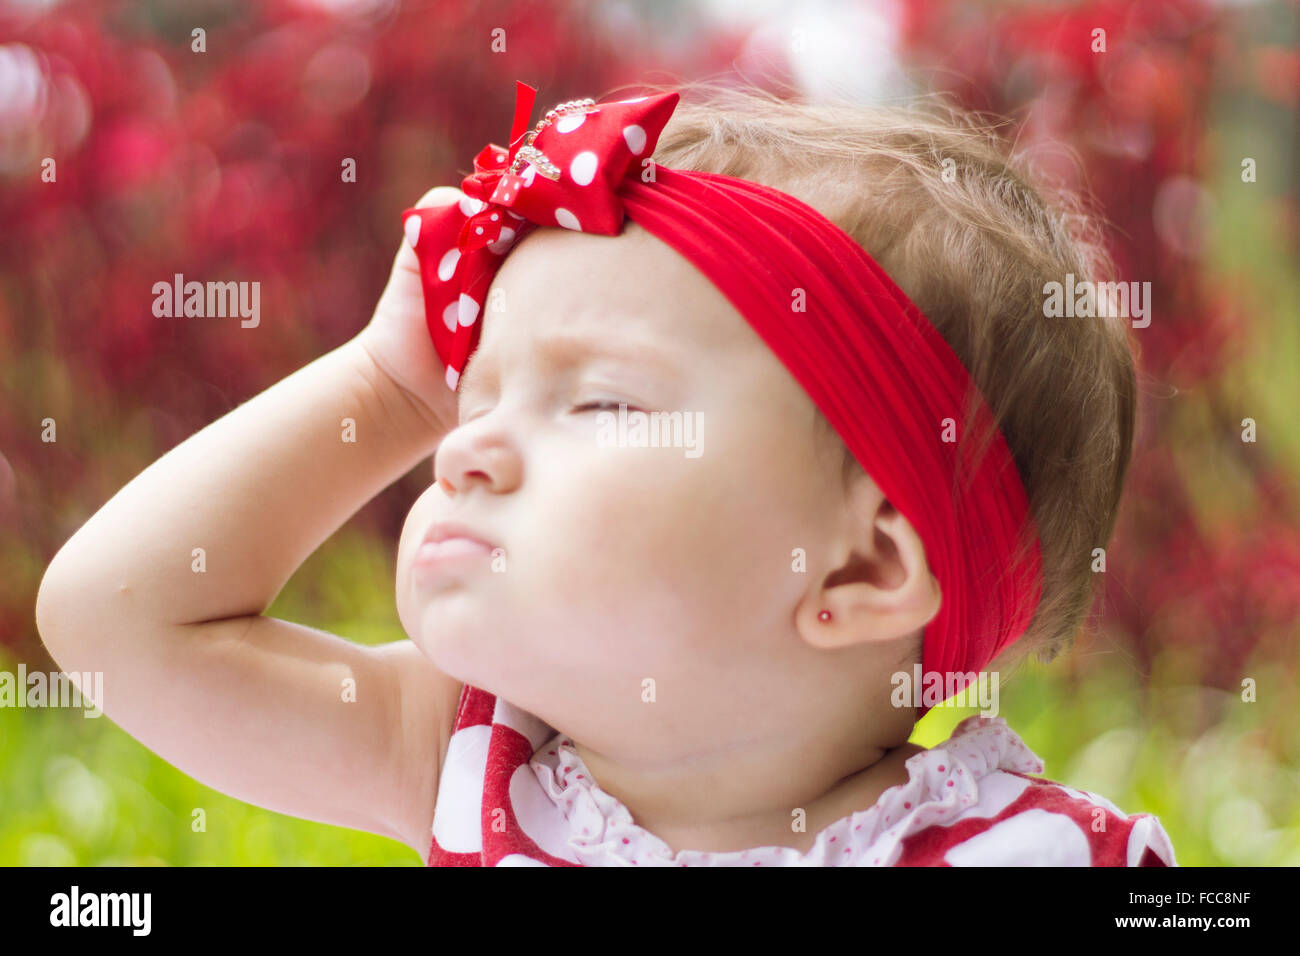 Close-Up Of A Pretty Baby Girl With Eyes Closed - Stock Image